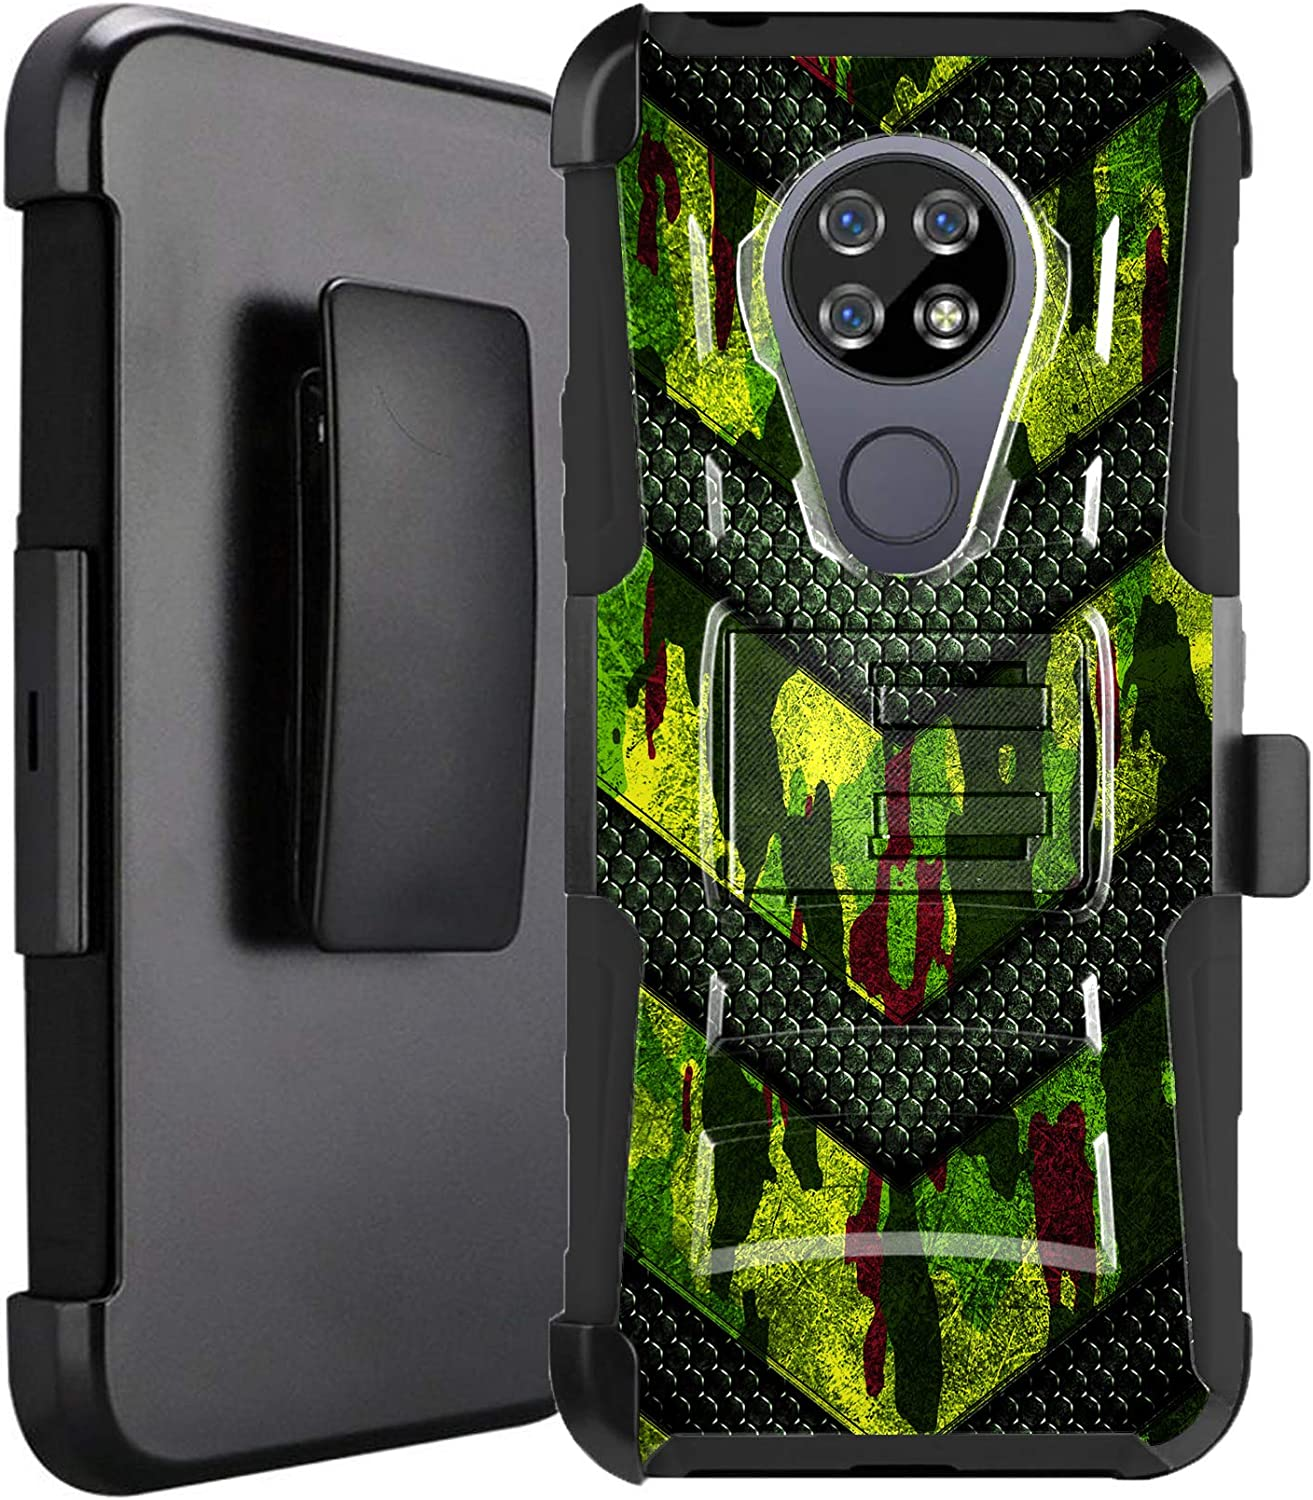 DALUX Hybrid Kickstand Holster Phone Case Compatible with Cricket Ovation/AT&T Radiant Max 4G LTE (2020) - Green Camo Badge